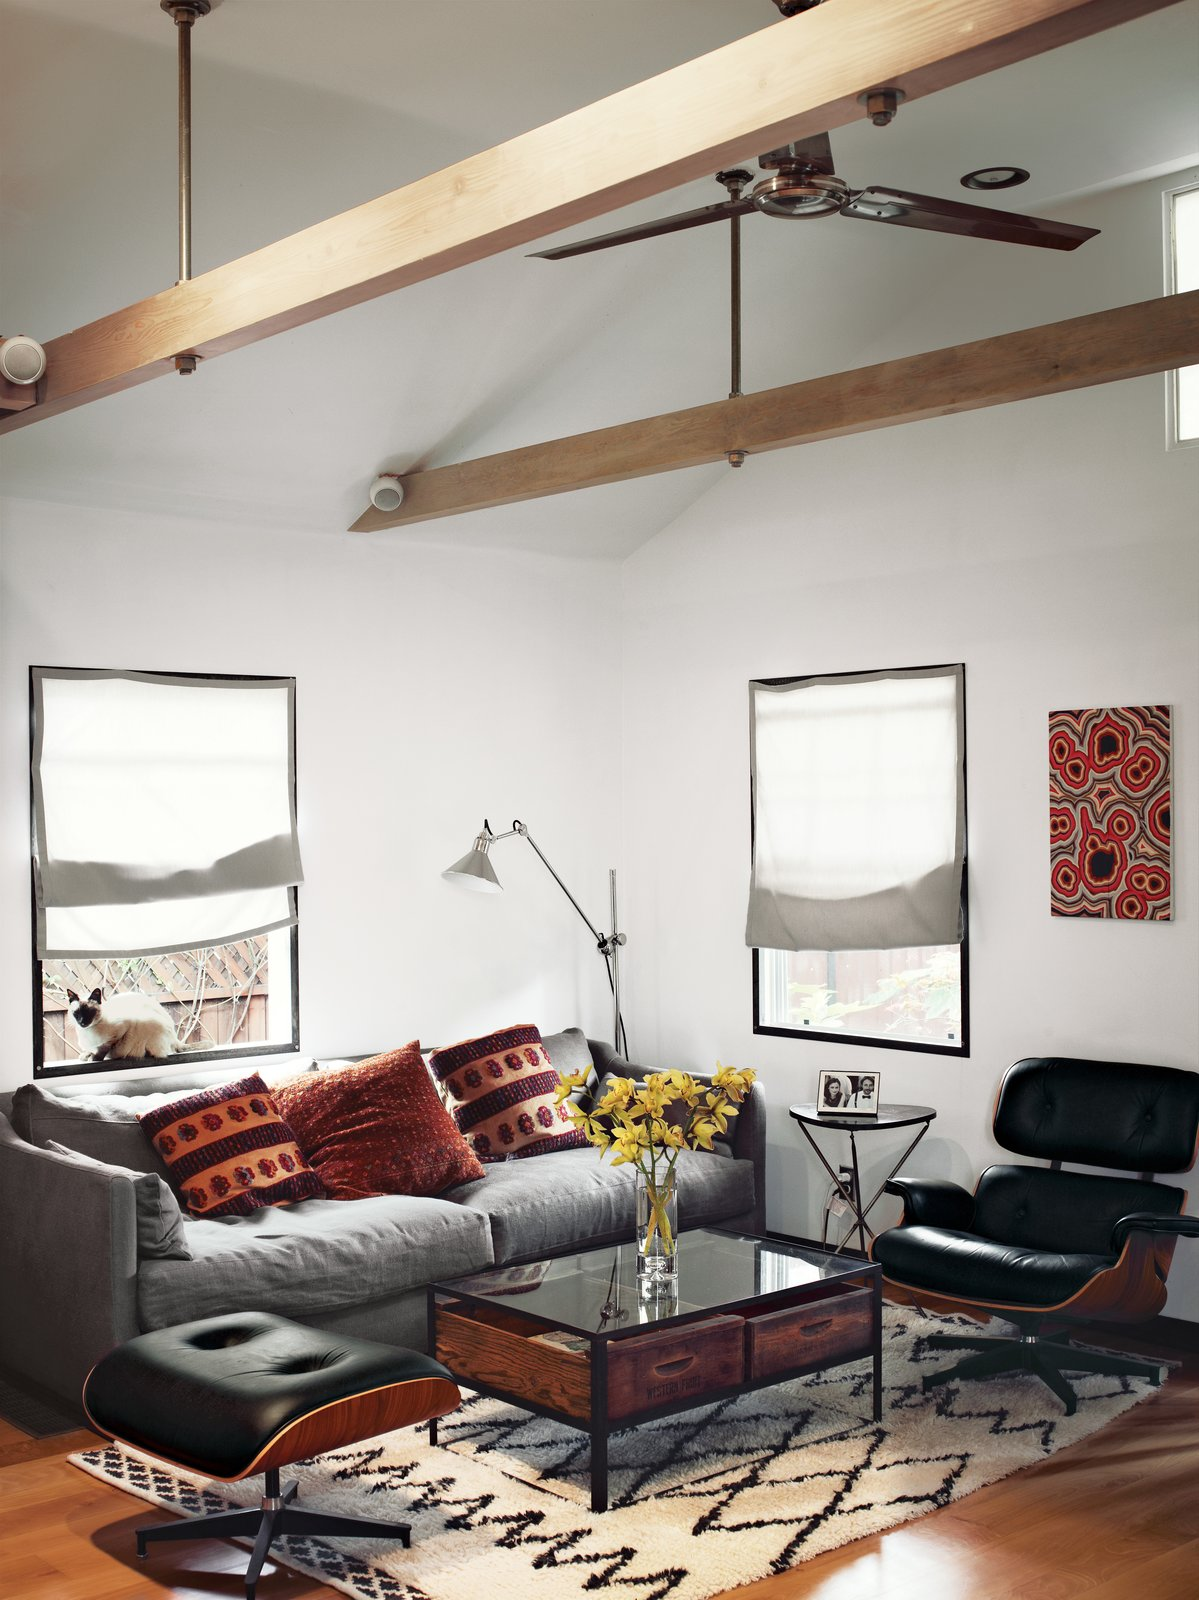 In the living area of actor Vincent Kartheiser's Hollywood cabin, redesigned by Funn Roberts to maximize every last inch of space, an Eames lounge chair and ottoman mix with a couch and coffee table by Cisco Home from HD Buttercup. The table in the main room is from West Elm. Tagged: Living Room, Recliner, Sofa, Coffee Tables, and Medium Hardwood Floor.  Loft by Tremaine Eppenger from The Tiny Hollywood Home of Mad Men's Vincent Kartheiser